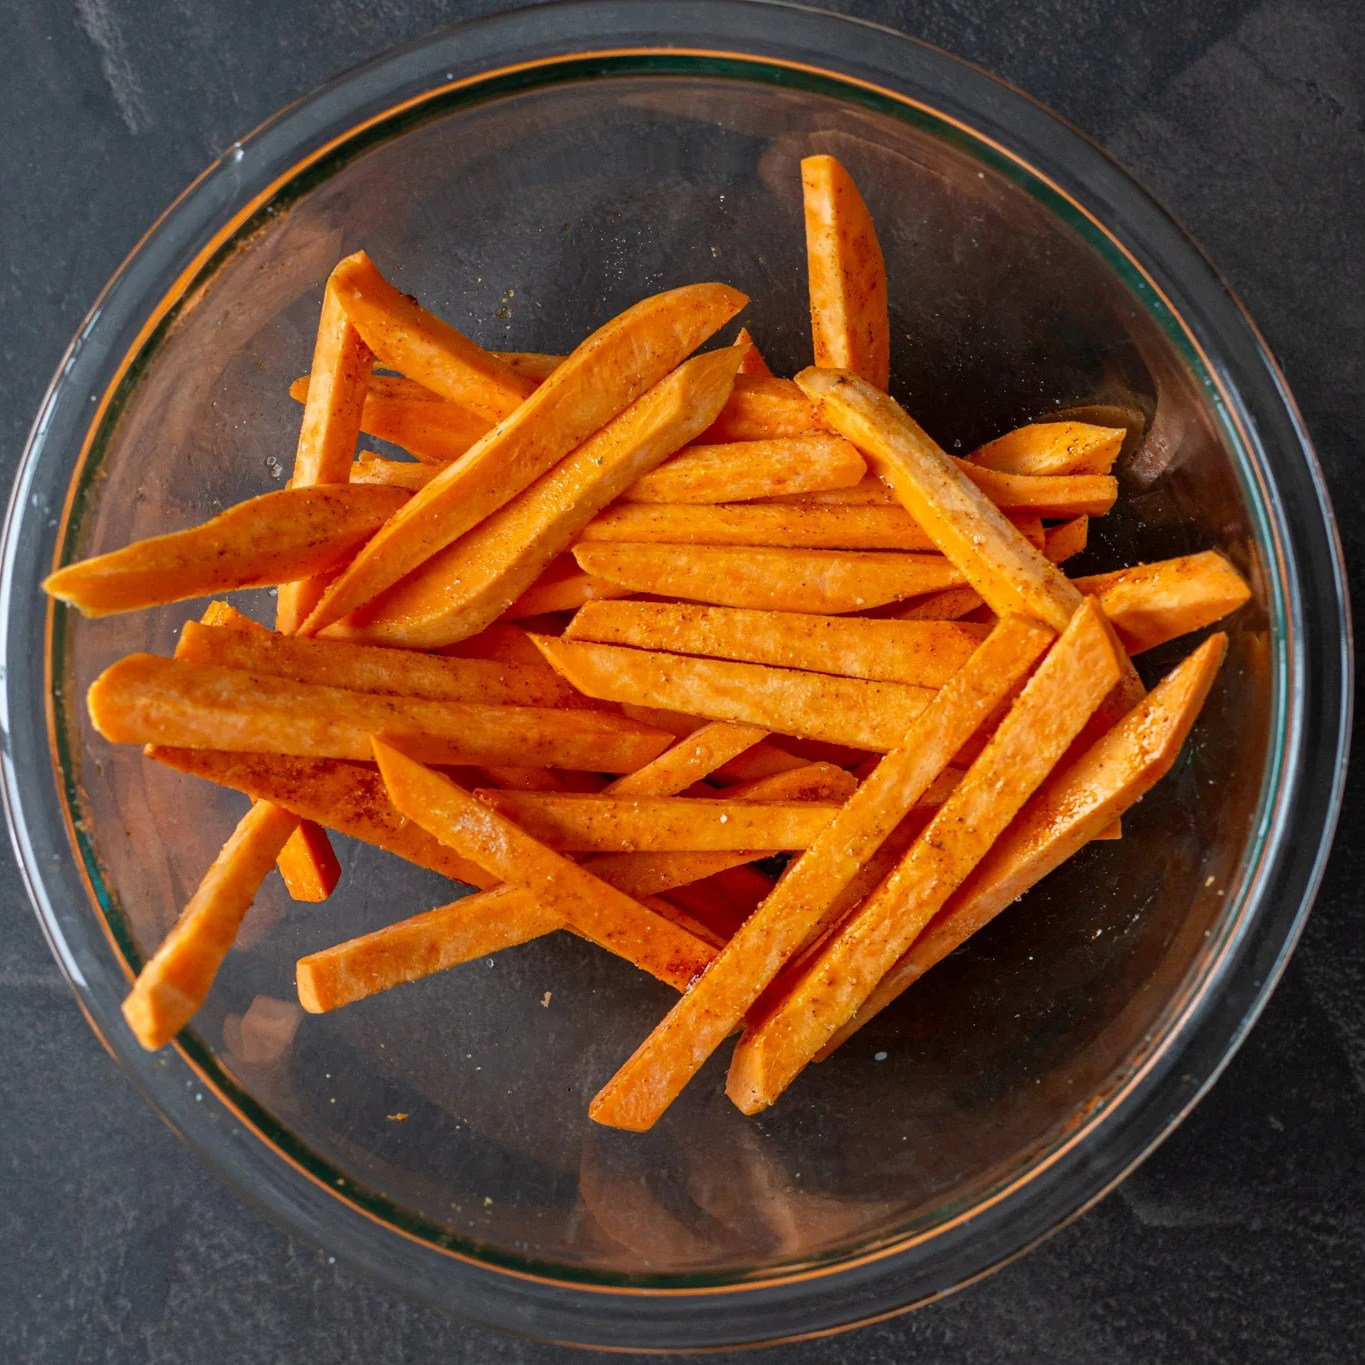 Cut up sweet potatoes in a bowl